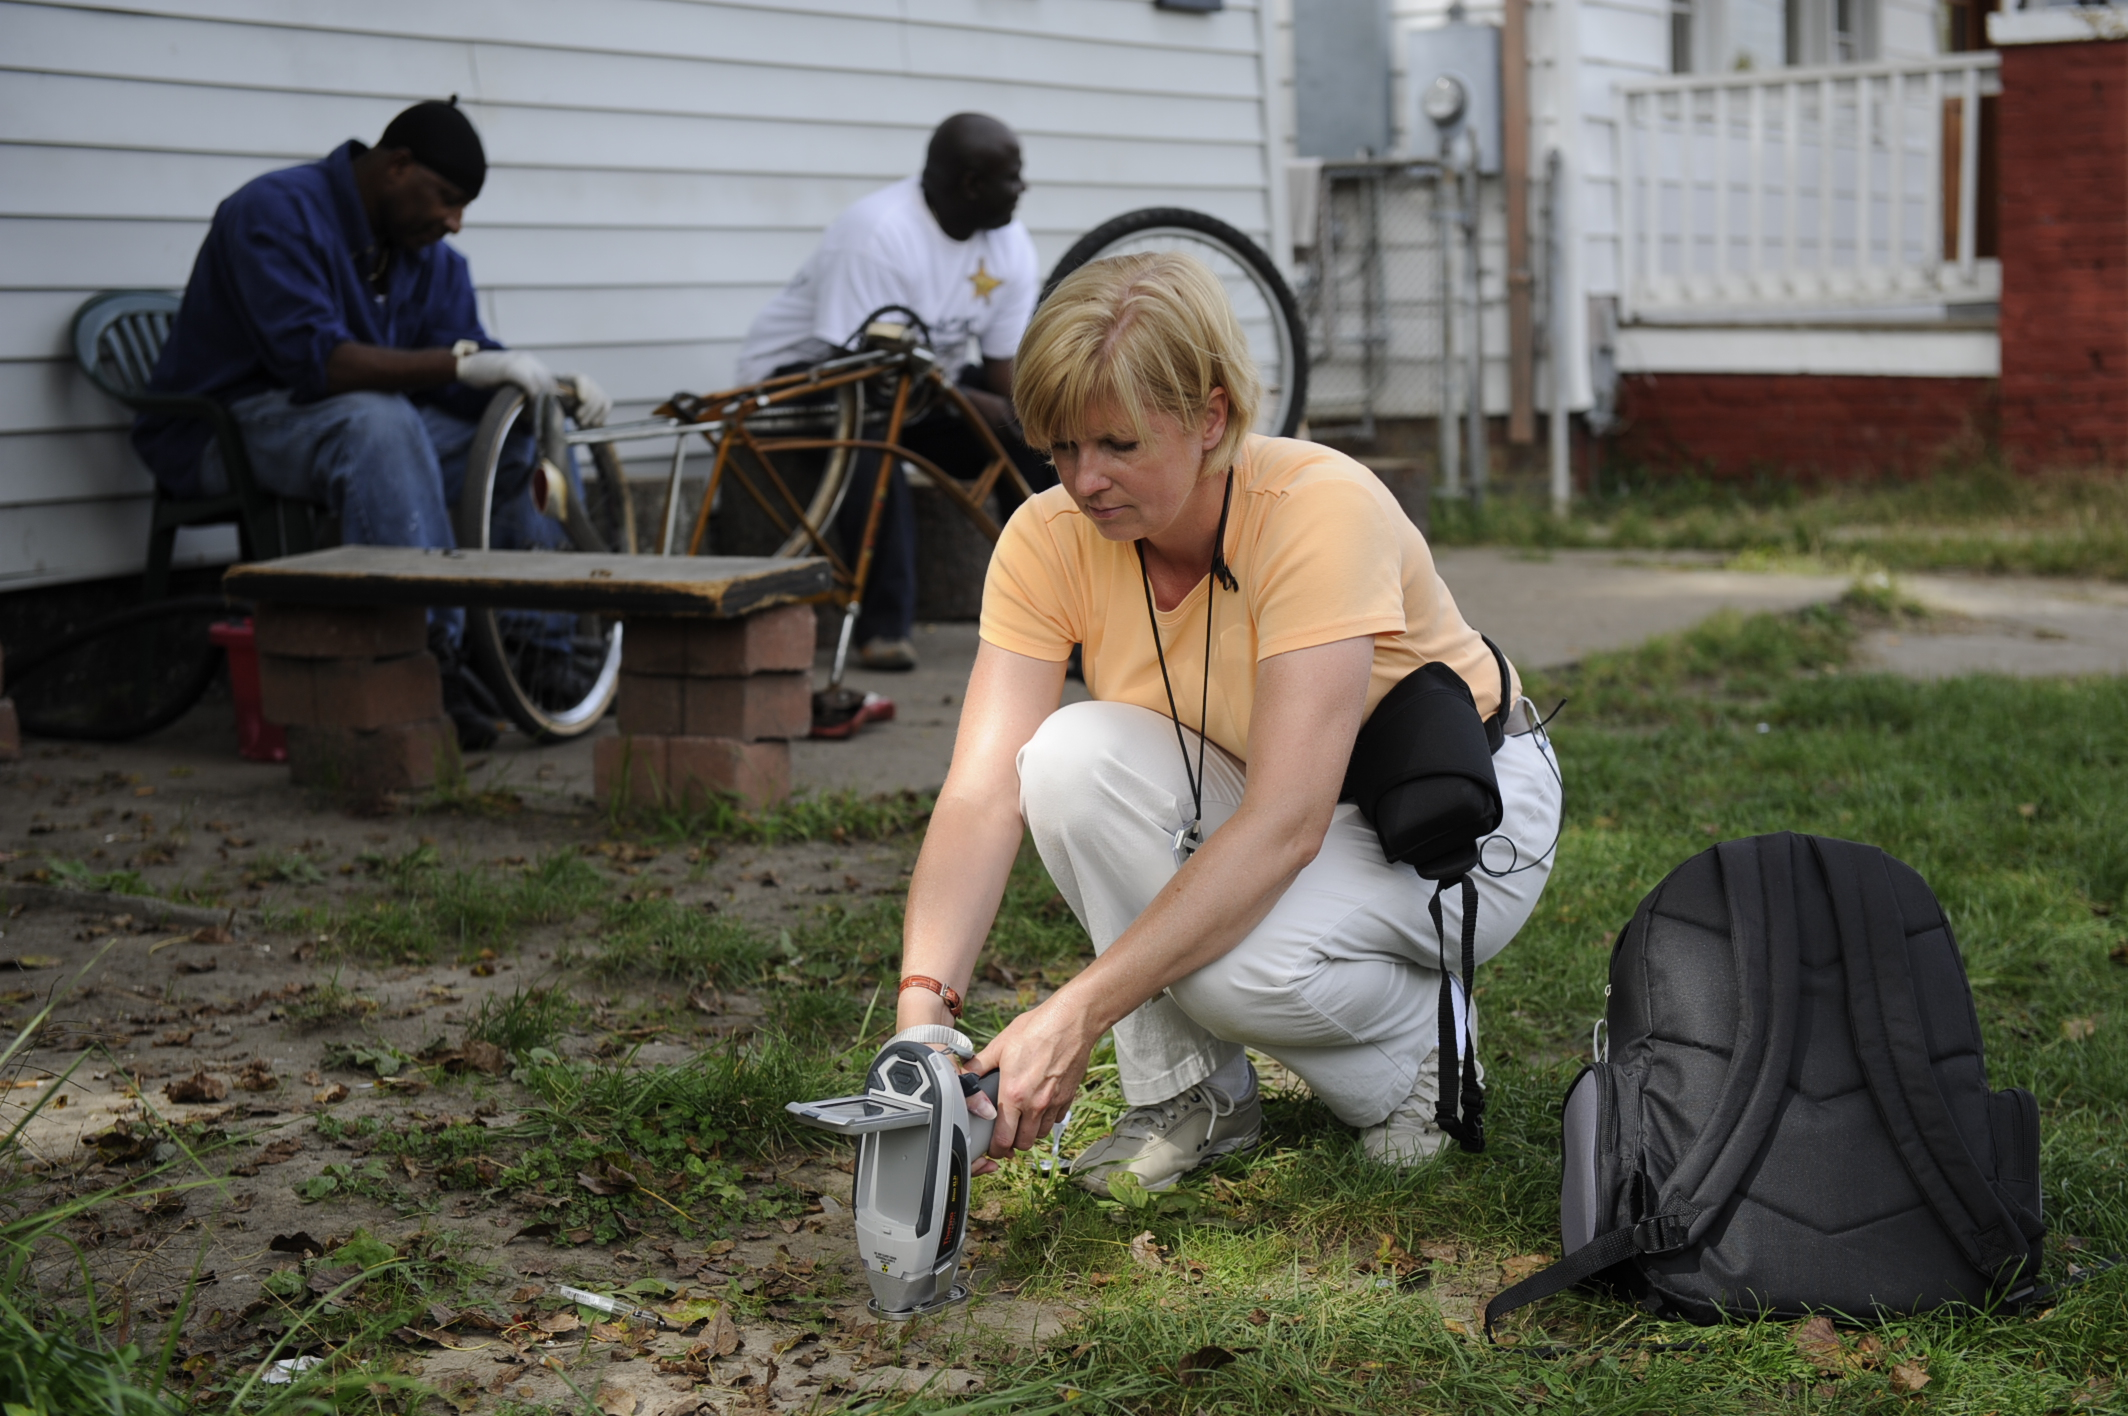 As an investigative reporter for USA Today, Alison Young spent weeks on the road testing soil with a handheld X-ray device in neighborhoods around long-closed lead smelters as part of her Ghost Factories investigation. (Photo courtesy of USA Today)